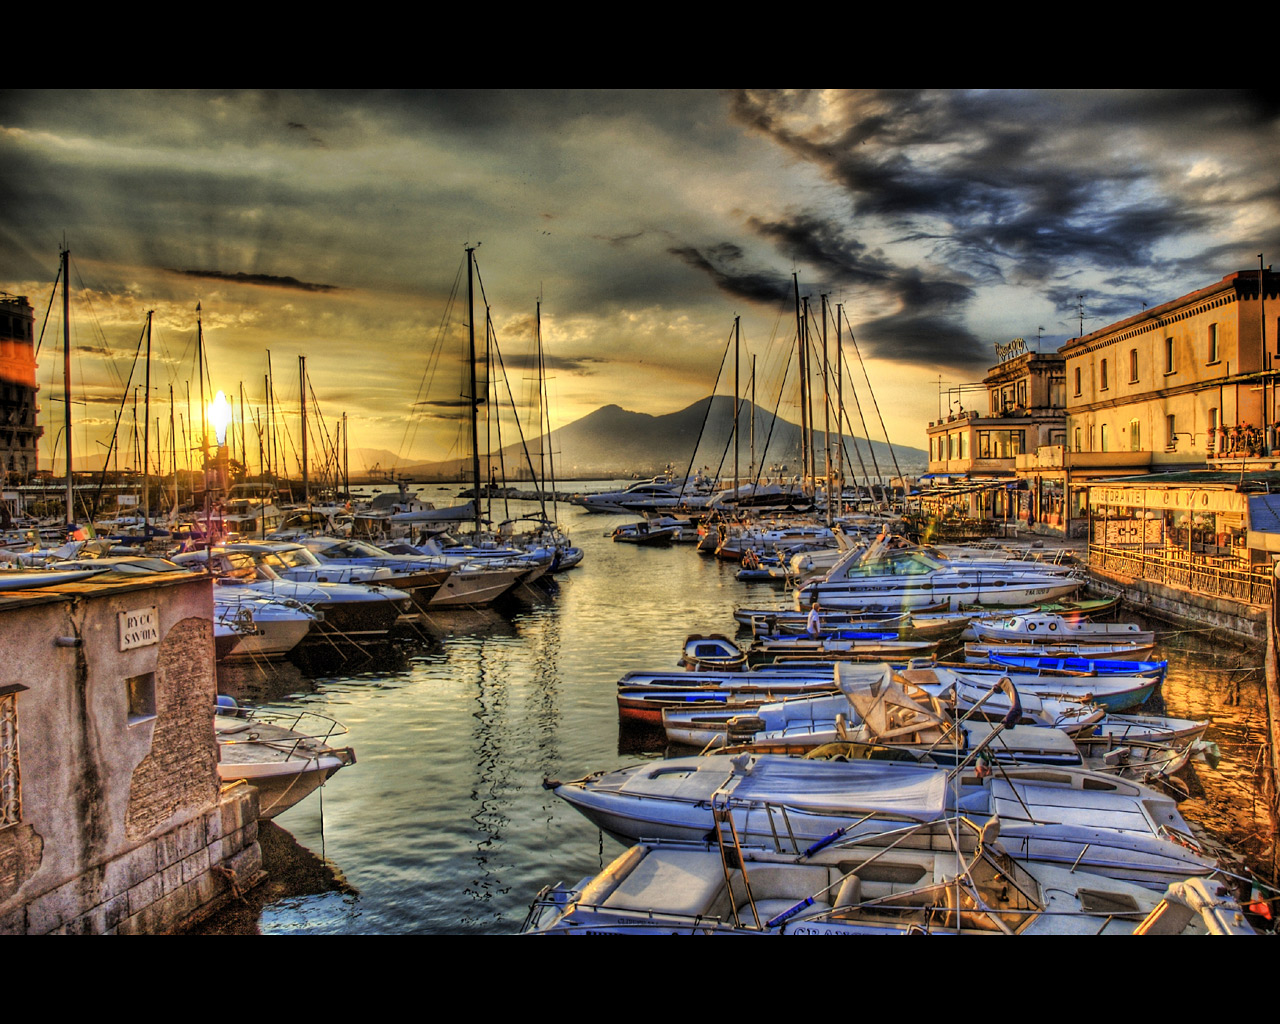 Naples Italy  city pictures gallery : Naples, Italy Europe Wallpaper 622270 Fanpop